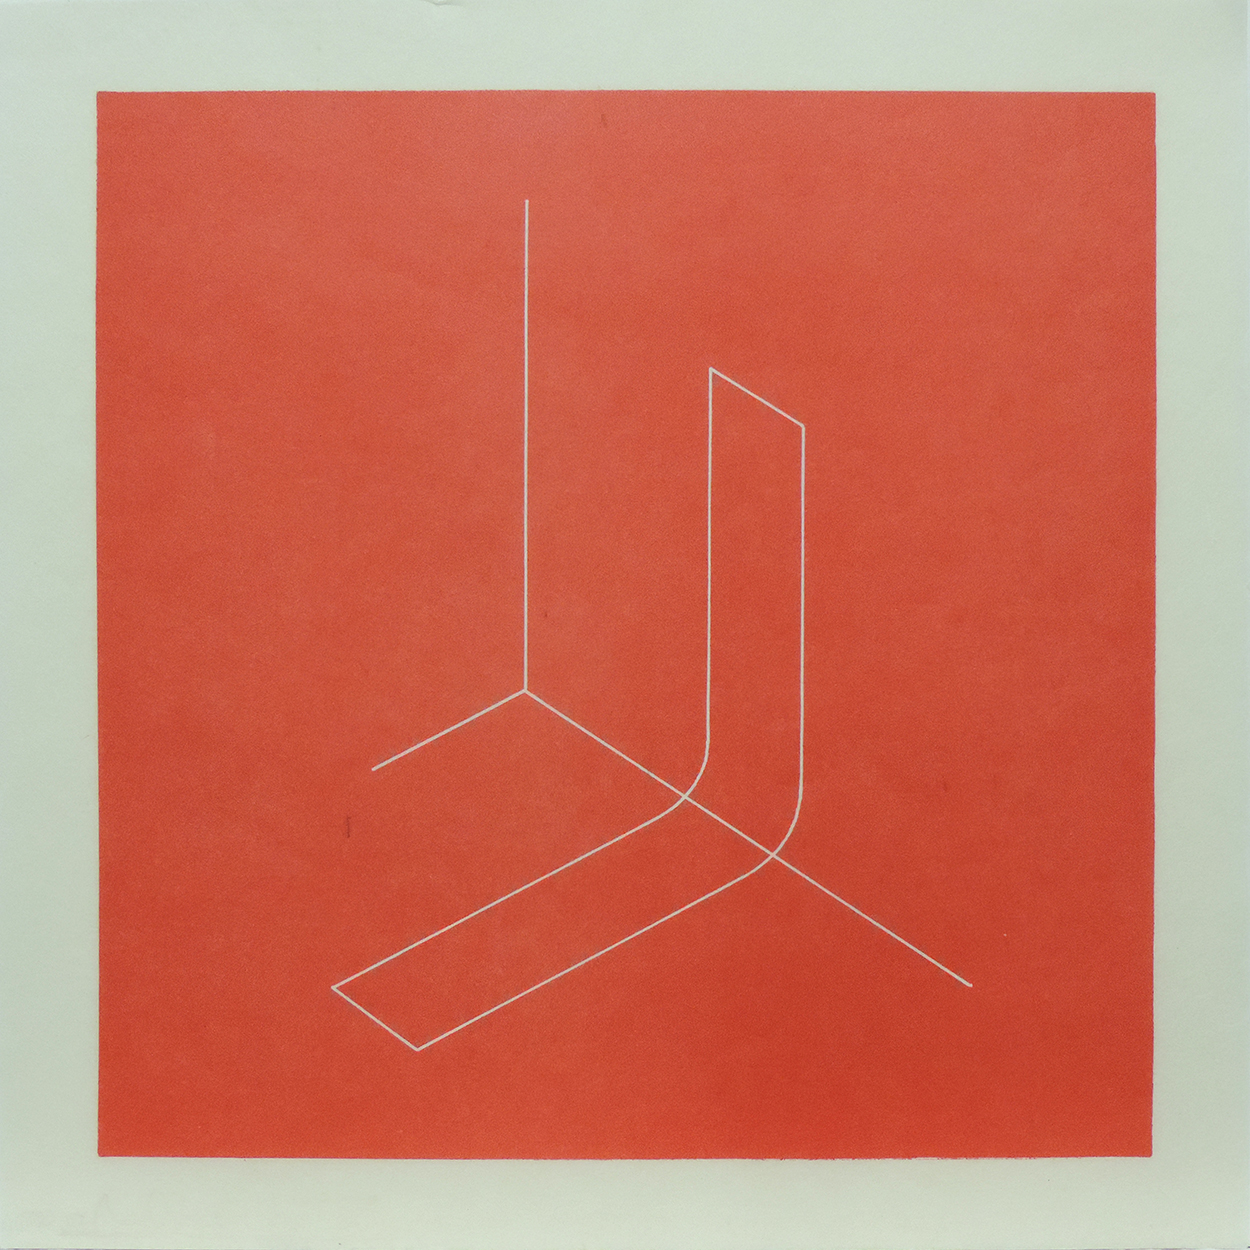 Untitled|lithograph on Japanese paper with cut edge|24.1 x 24.1 cm|1979